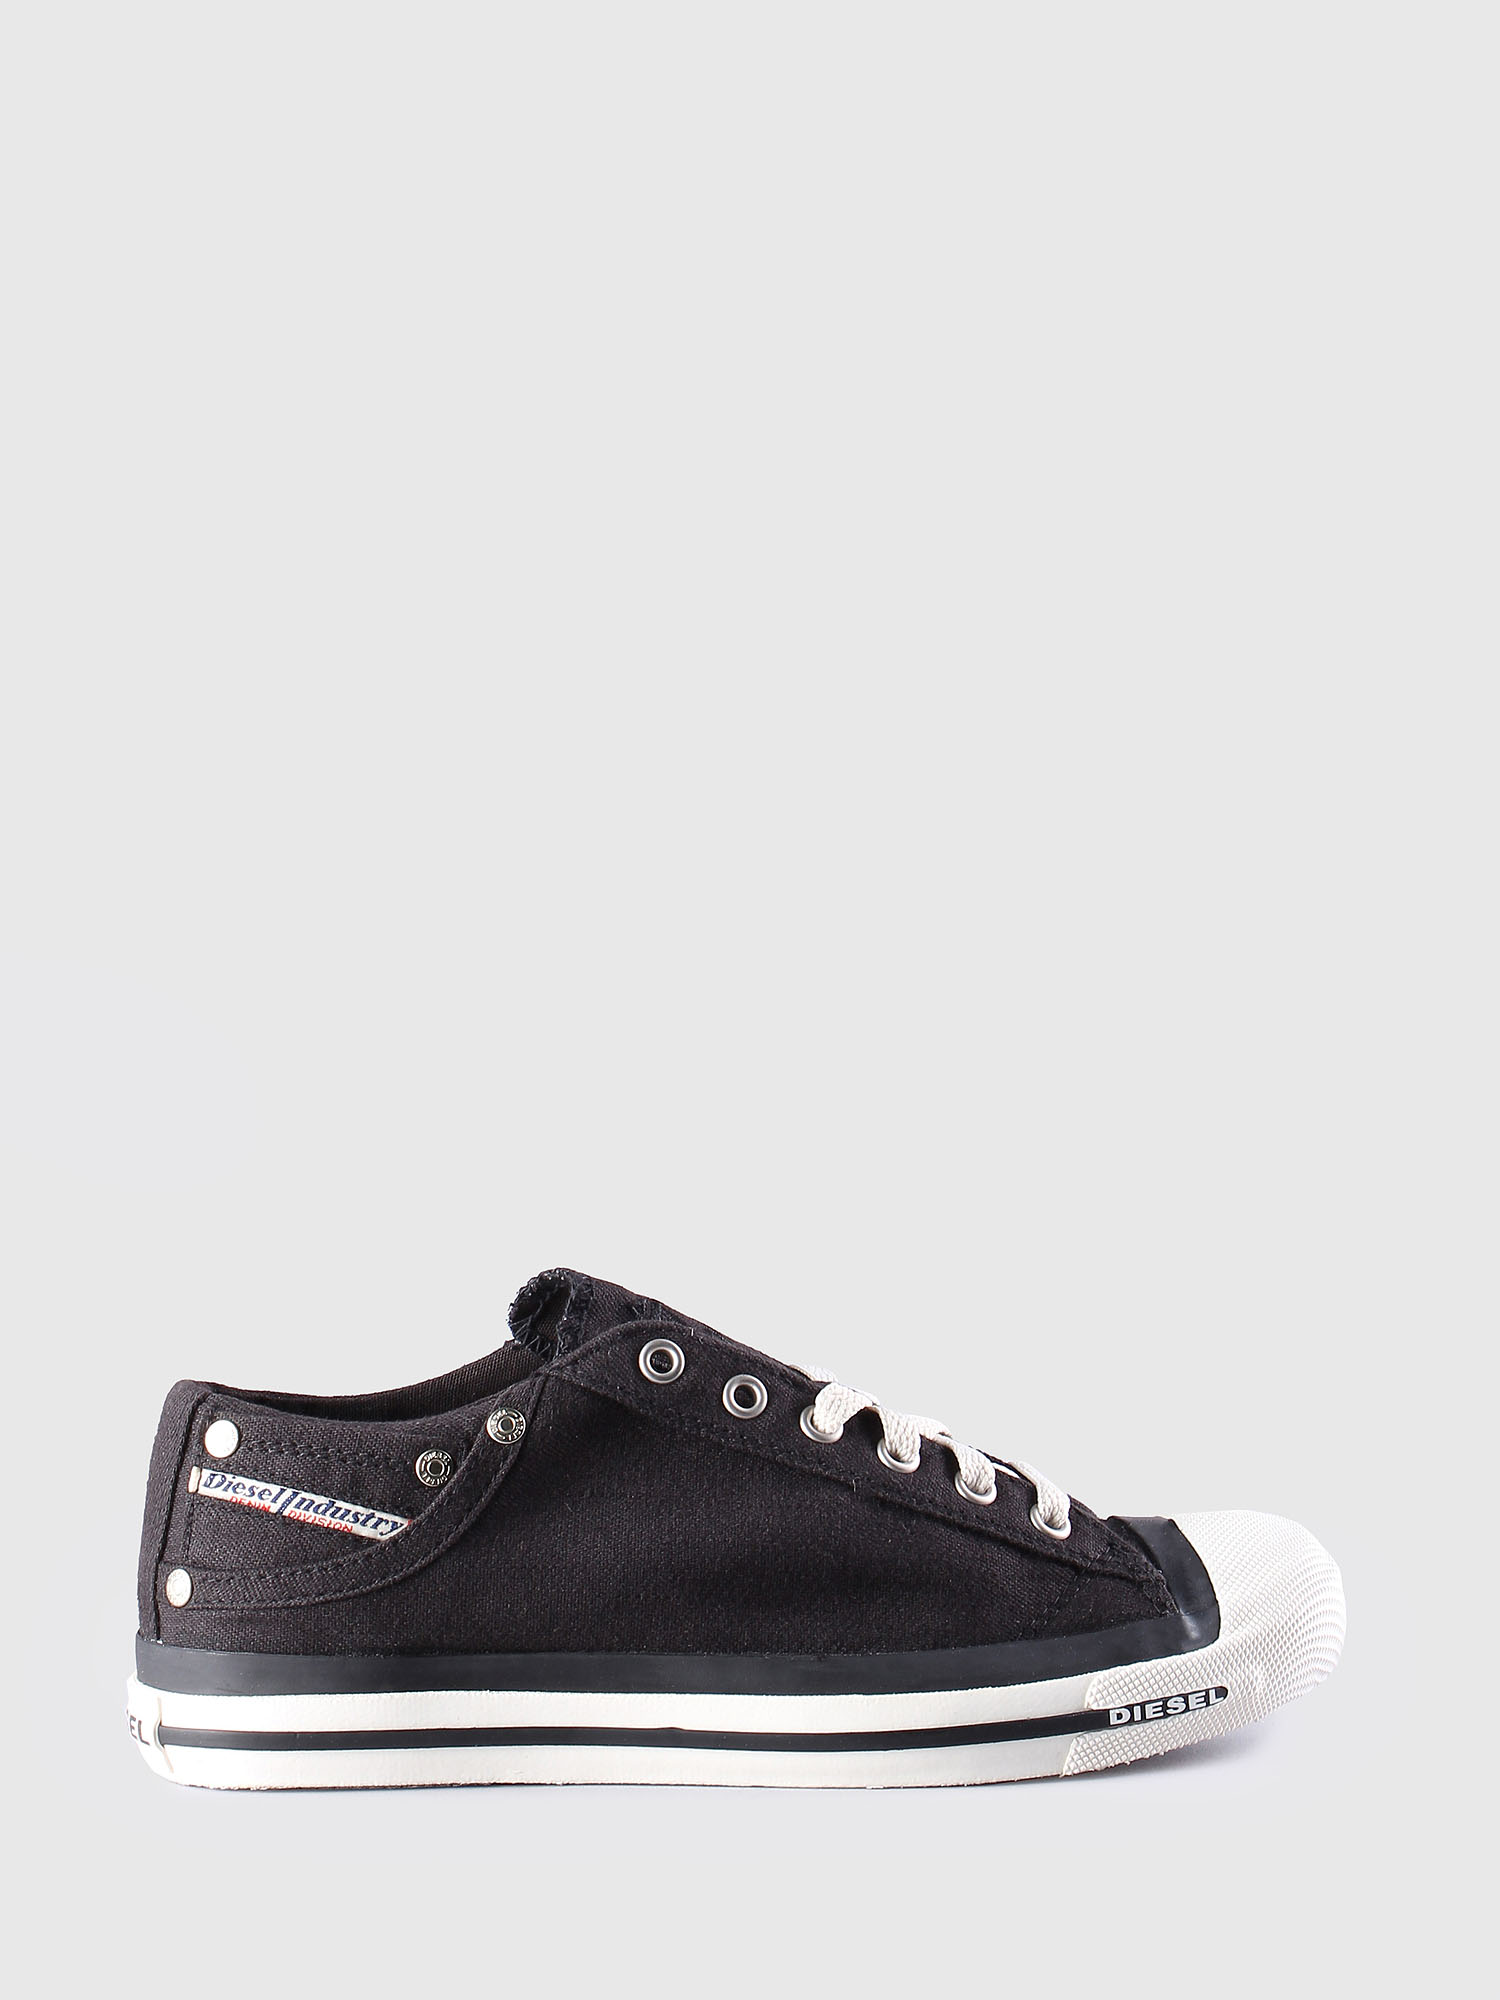 Diesel - EXPOSURE LOW W,  - Sneakers - Image 1